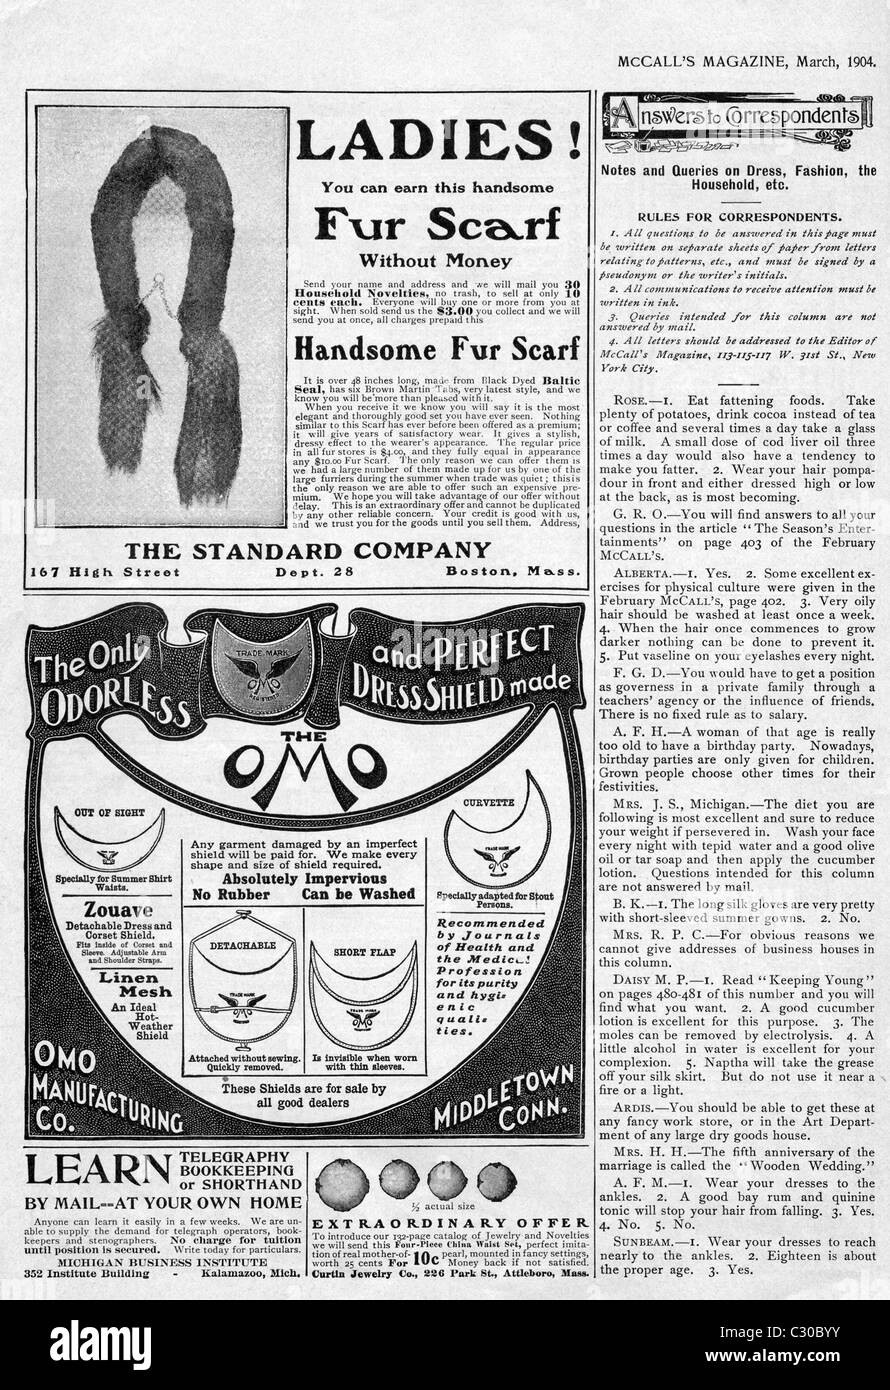 This page from McCall's Magazine, March 1904, includes advertisements (ads) for a ladies fur scarf and dress - Stock Image